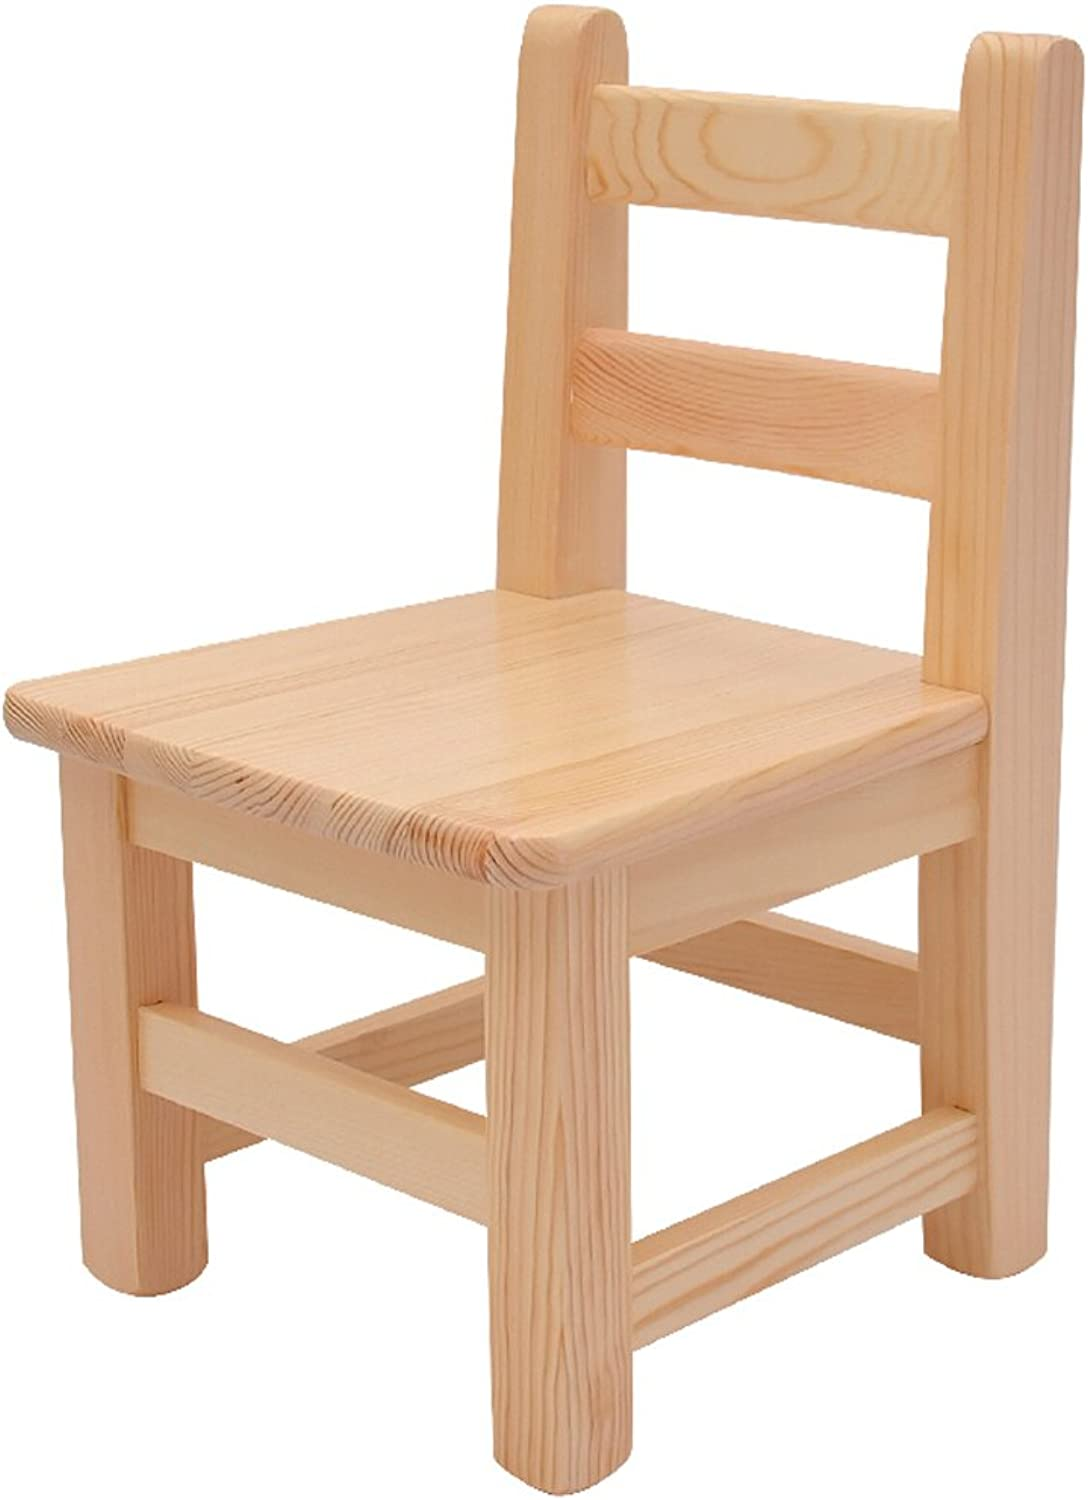 CIGONG Solid Wood Chair, Baby Chair, Dining Chair, Student Leisure Chair Wooden Bench (color   S-28x28x47CM)